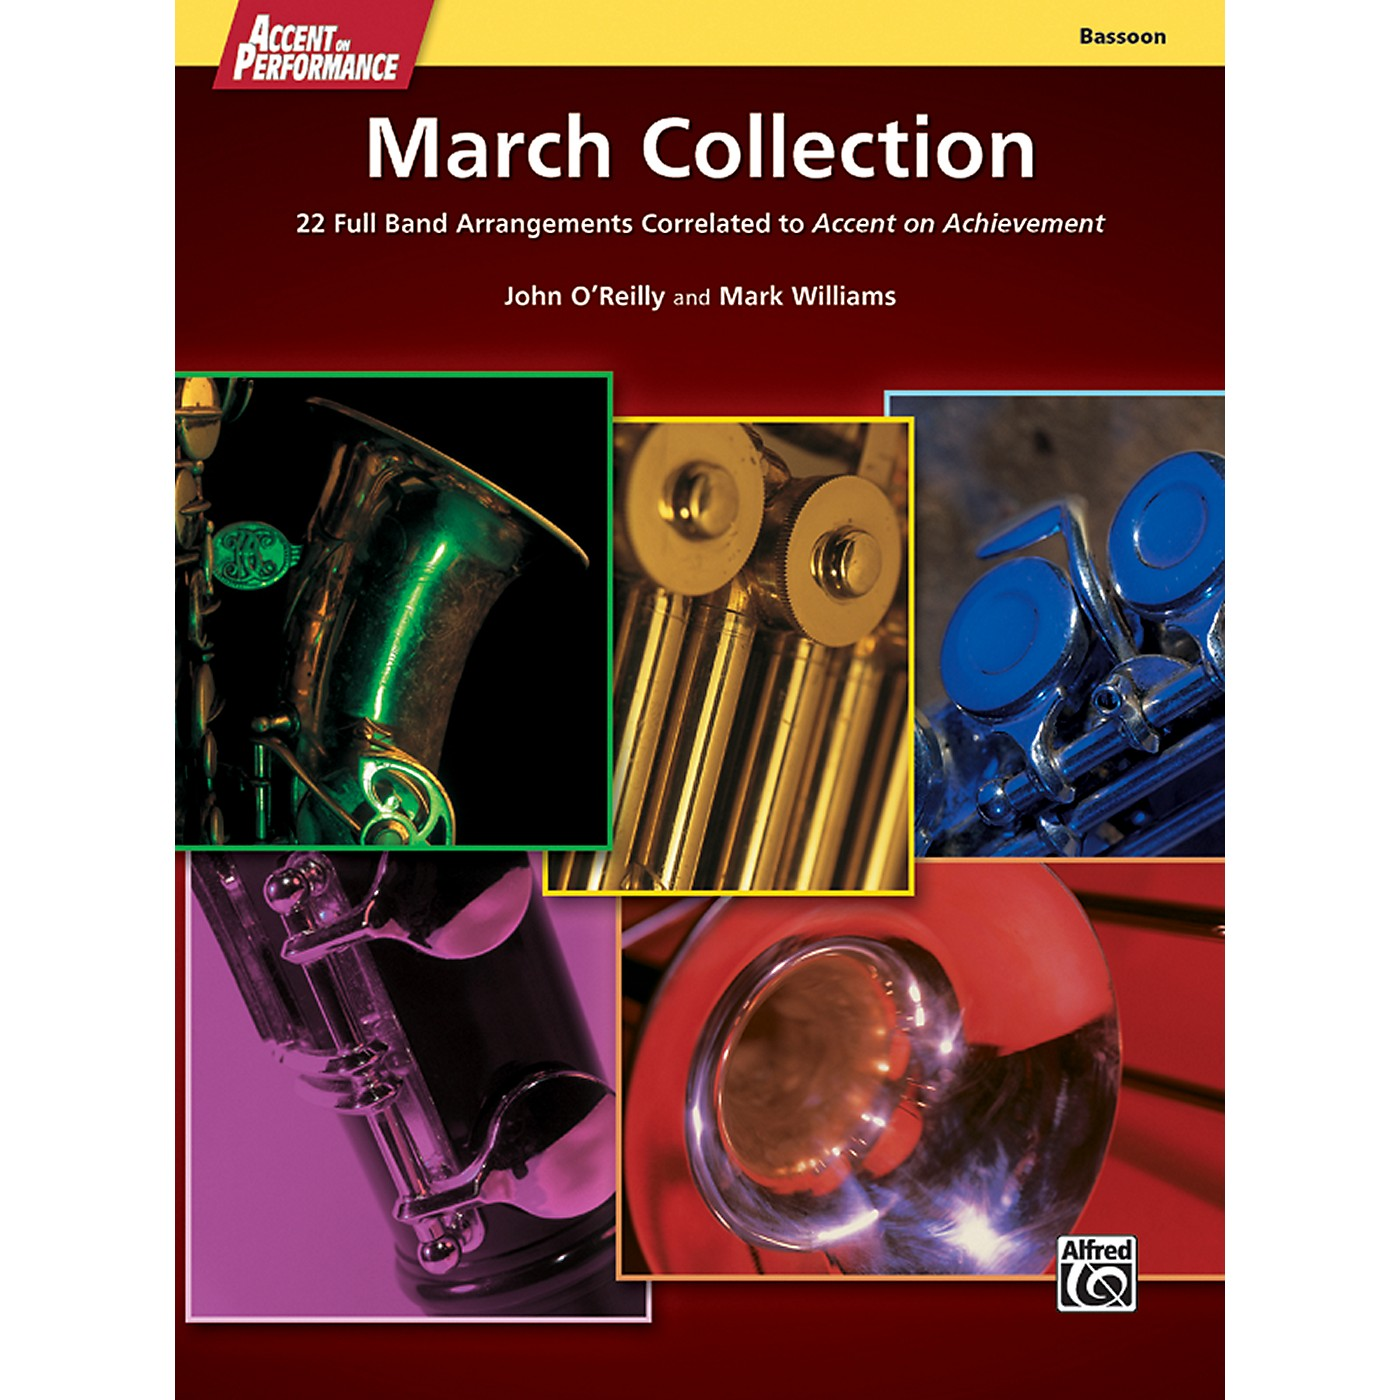 Alfred Accent on Performance March Collection Bassoon Book thumbnail